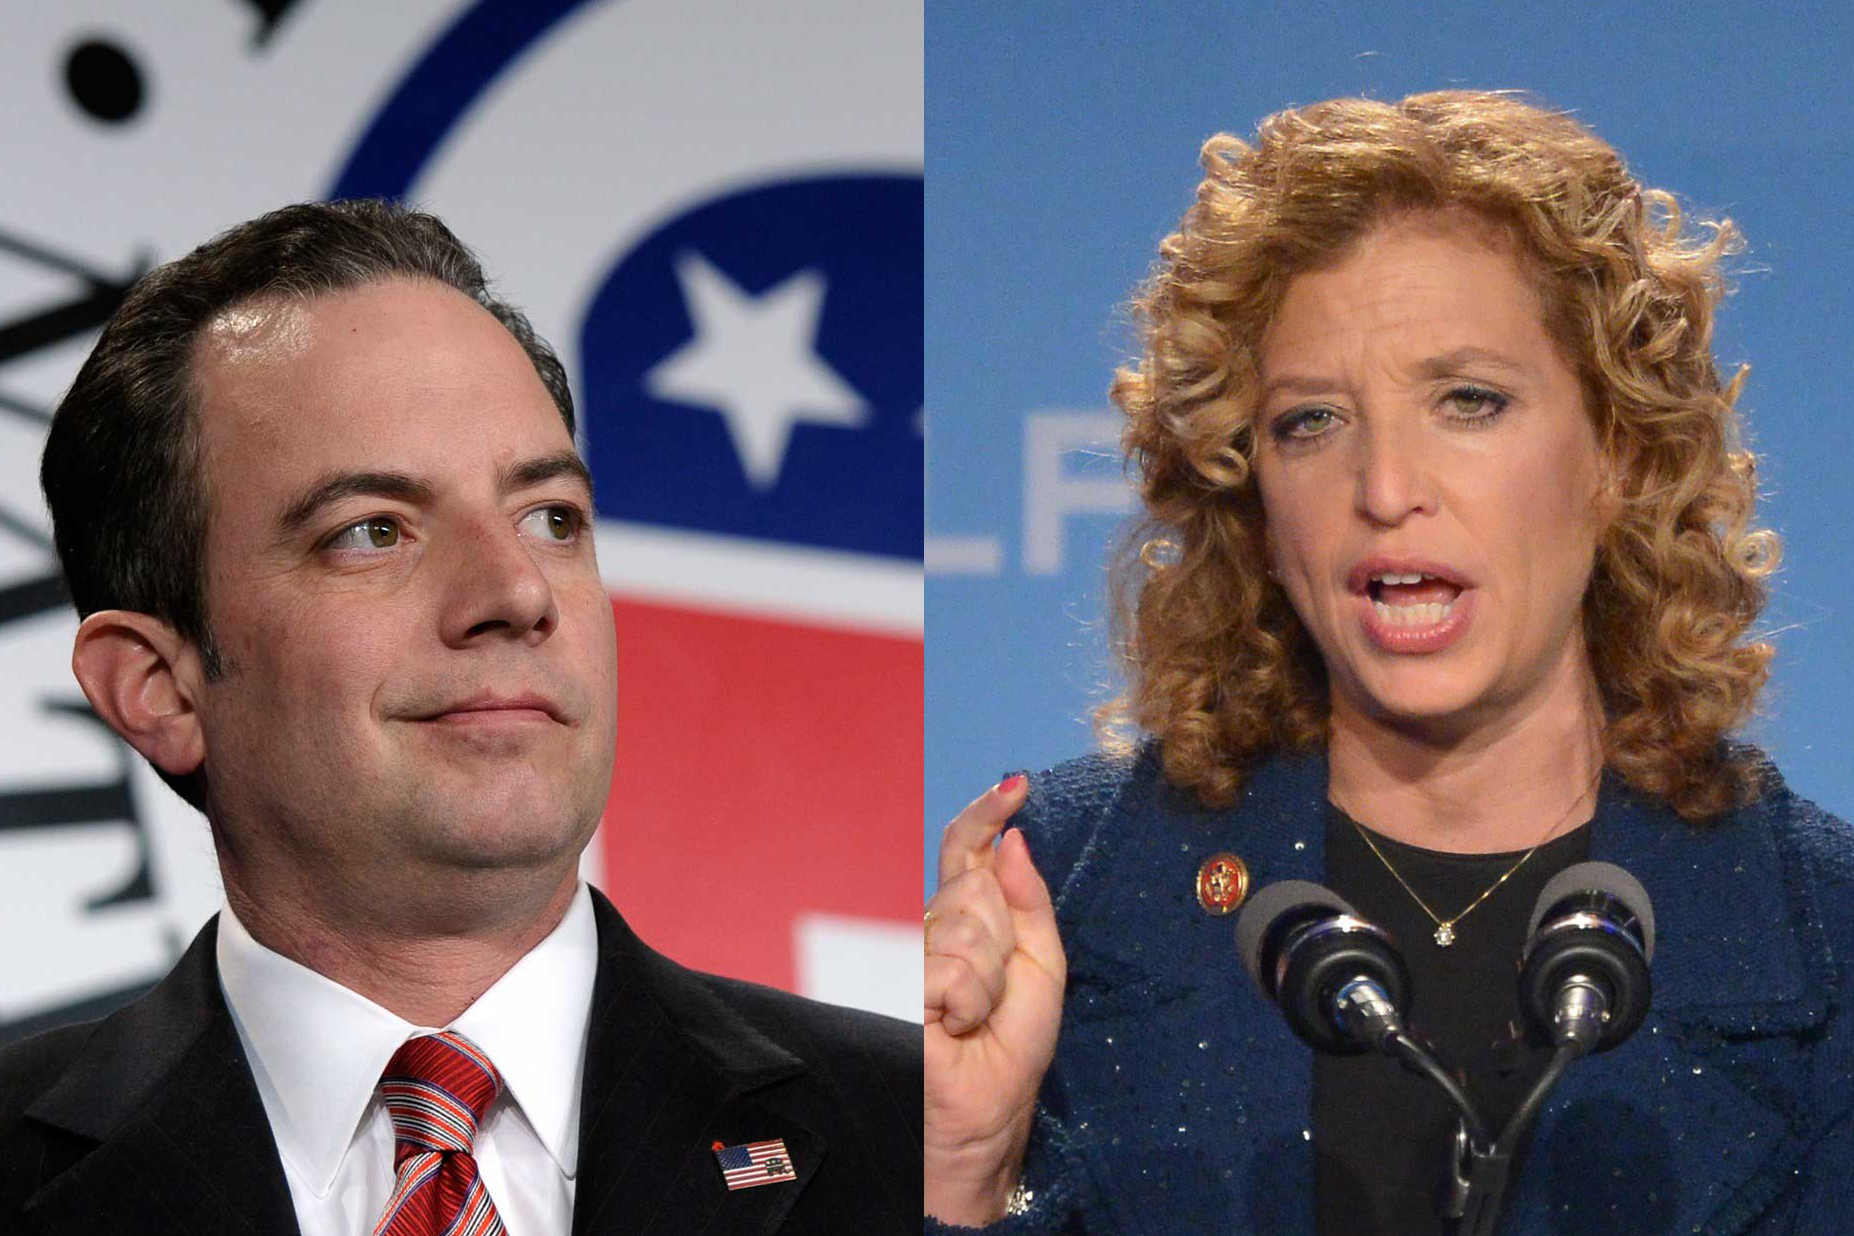 Left: Reince Priebus; Right: Debbie Wasserman-Schultz